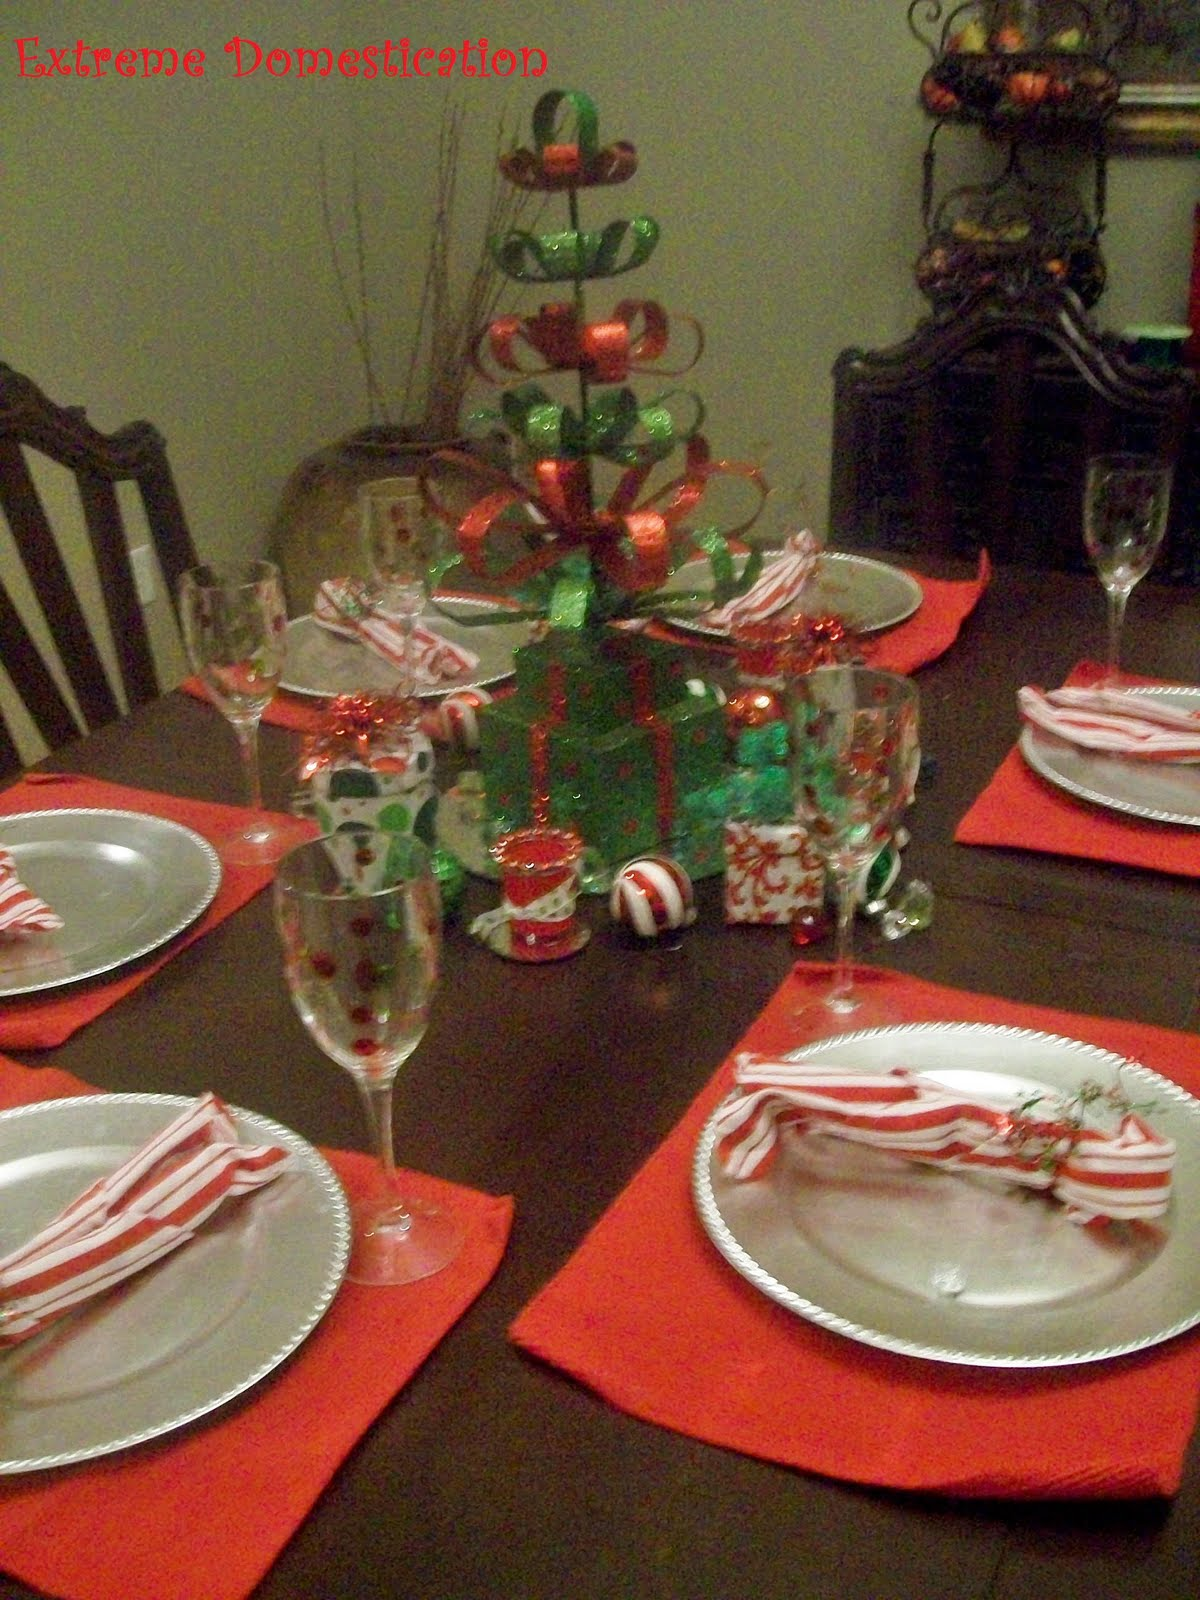 Extreme domestication christmas party table setting Christmas party table settings